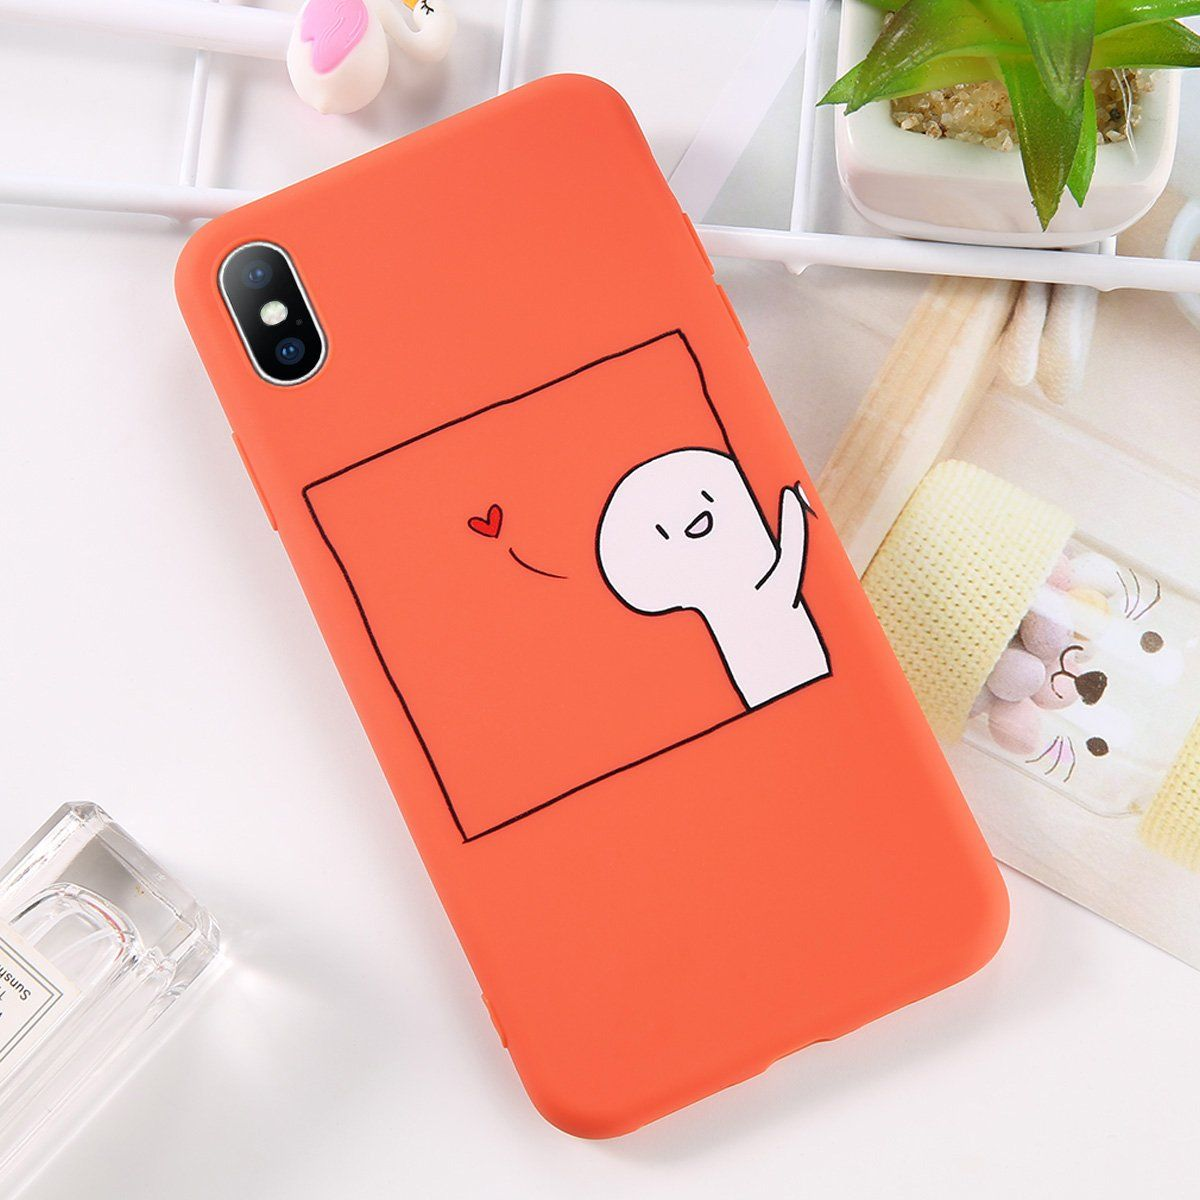 0014ea441e Moskado Cartoon Couples Phone Case For iphone X Case For iphone 6 6S 7 8  Plus Soft TPU Back Cover Funny Print Cases Outfit Accessories From Touchy  Style ...